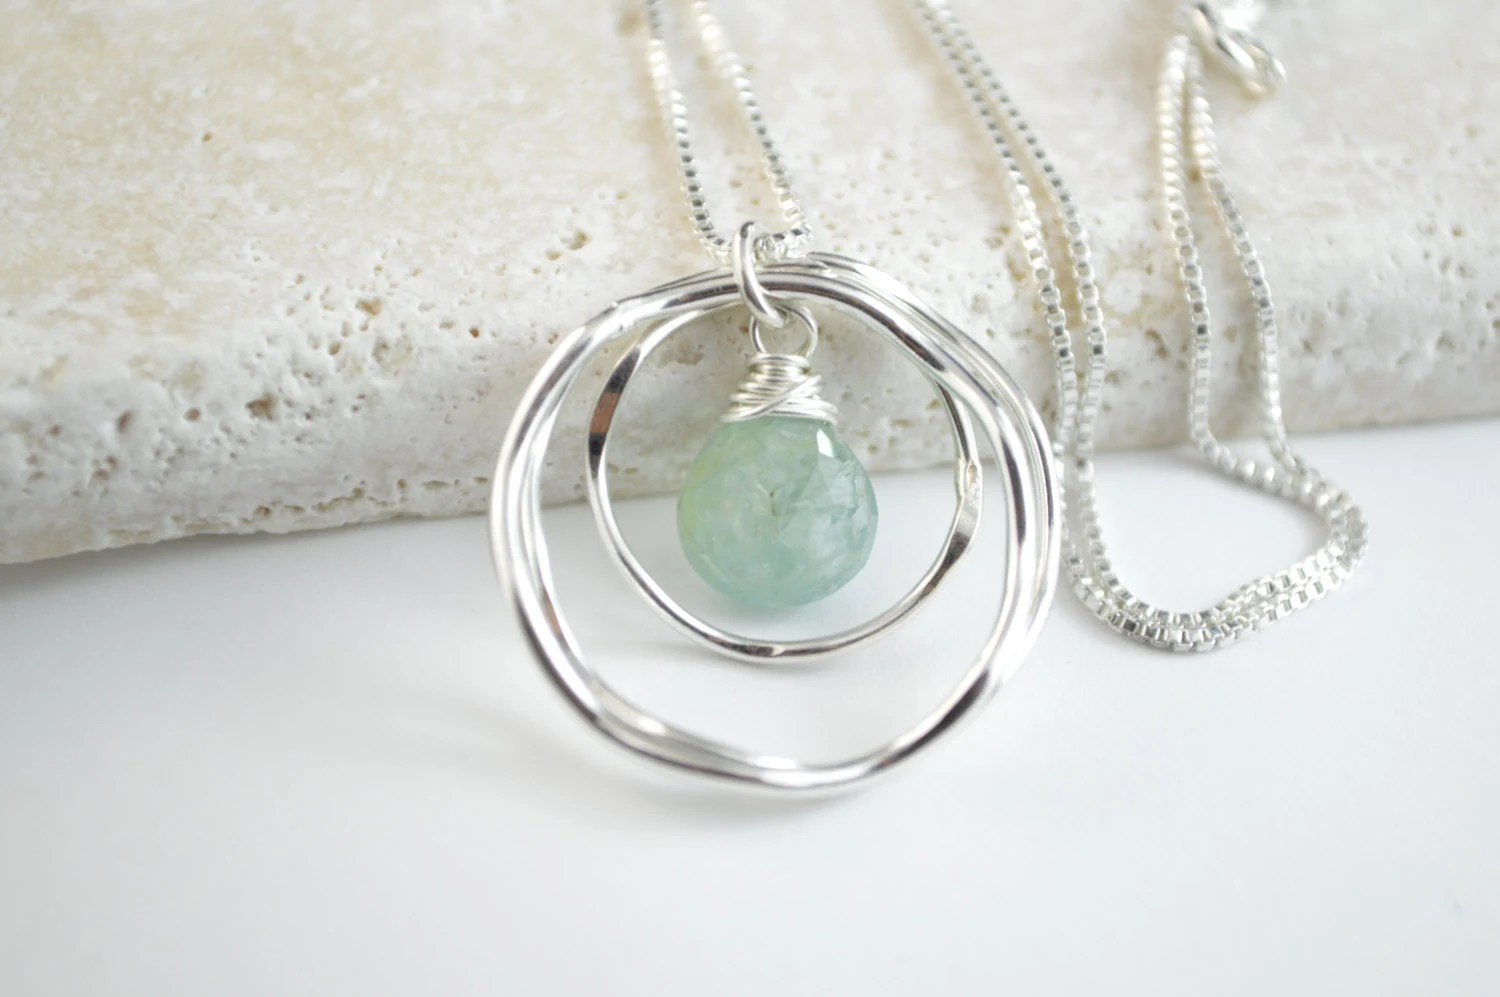 30th Birthday Gift For Her,Aquamarine Necklace, March